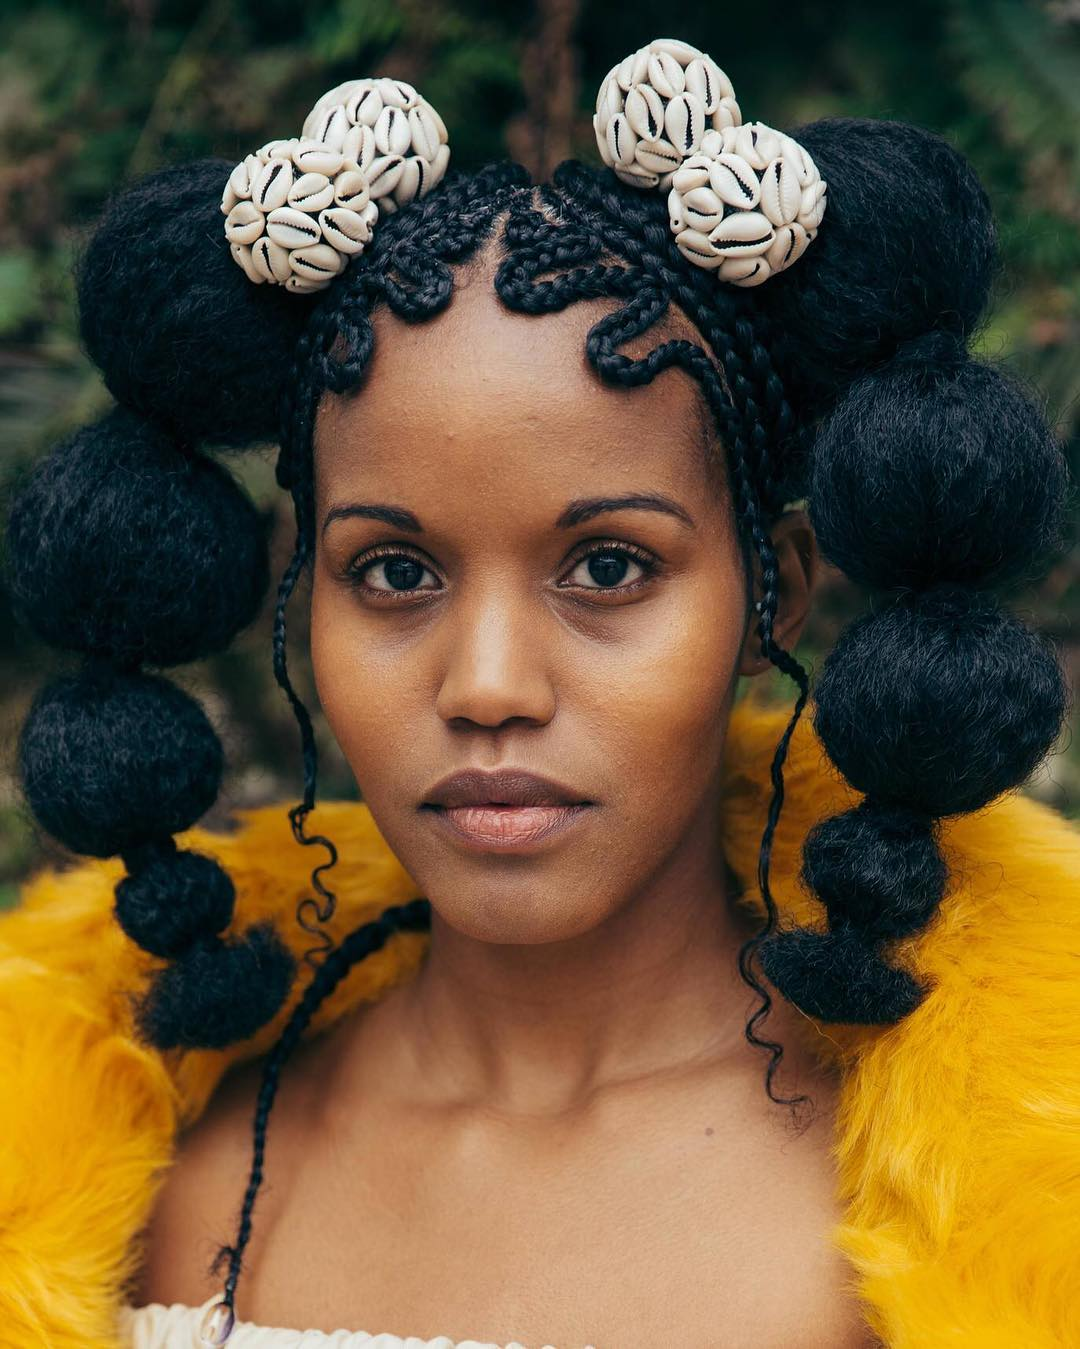 Shani Crowe: The Braid Queen Who Turns Hair Into Art